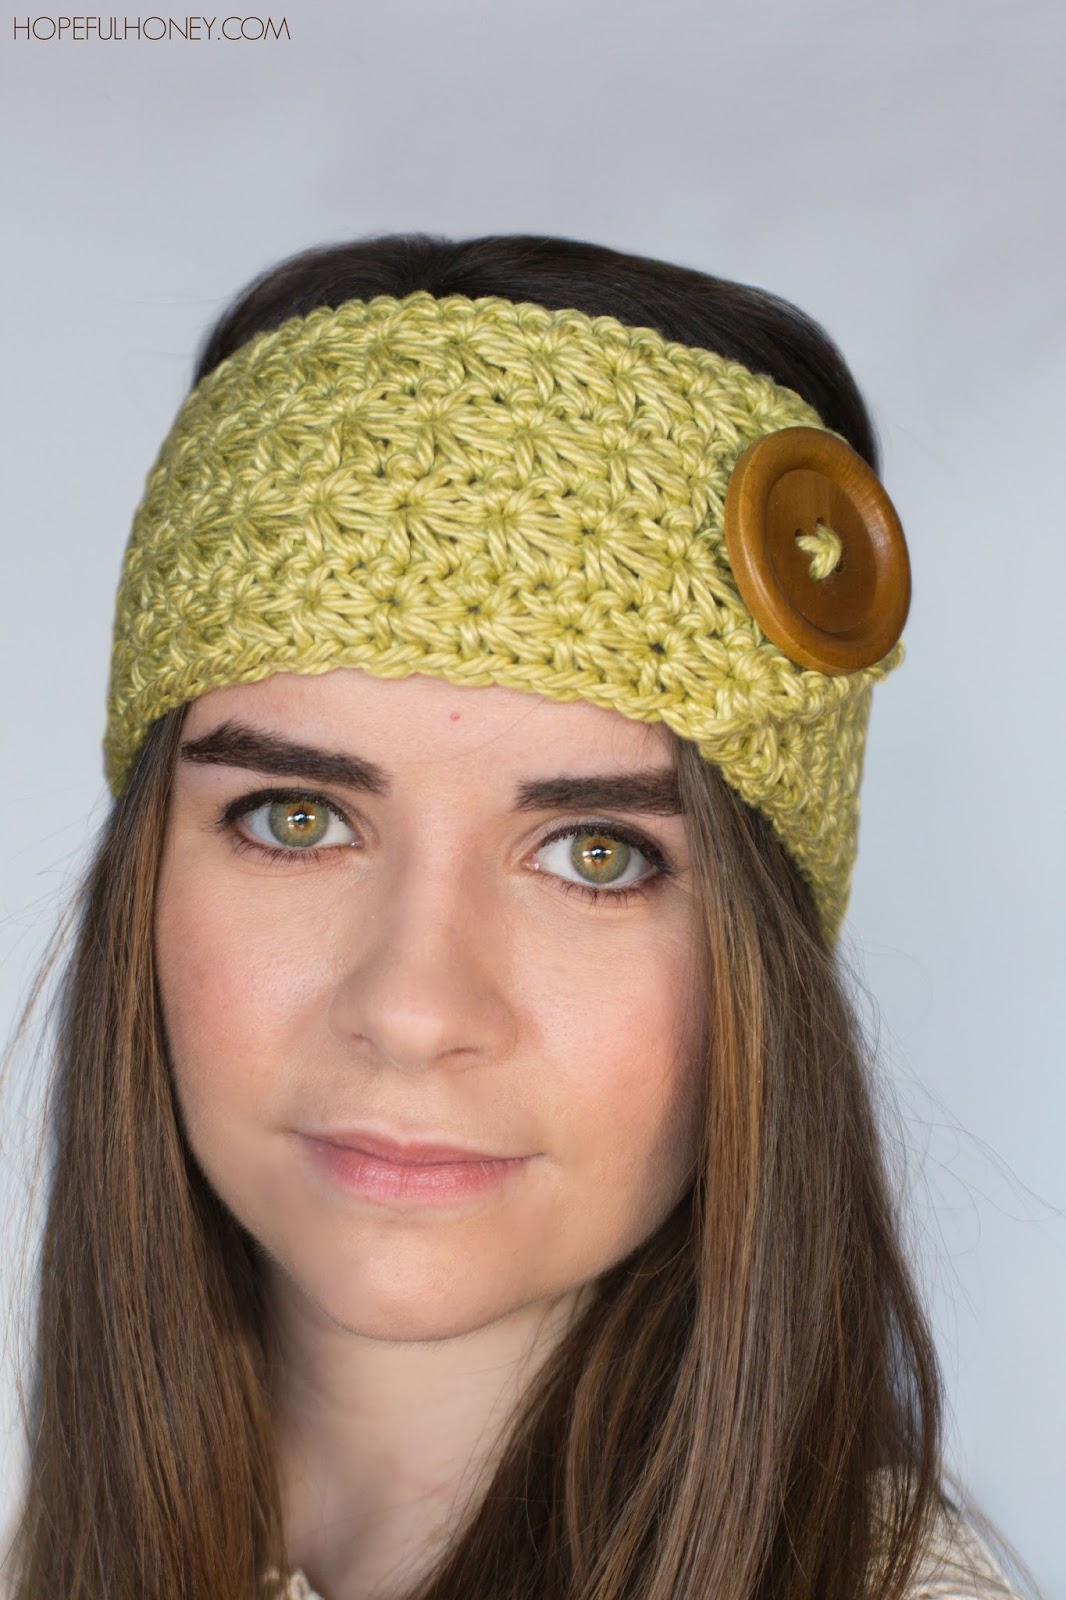 Free Adjustable Crochet Headband Pattern : Hopeful Honey Craft, Crochet, Create: Enchanted Forest ...